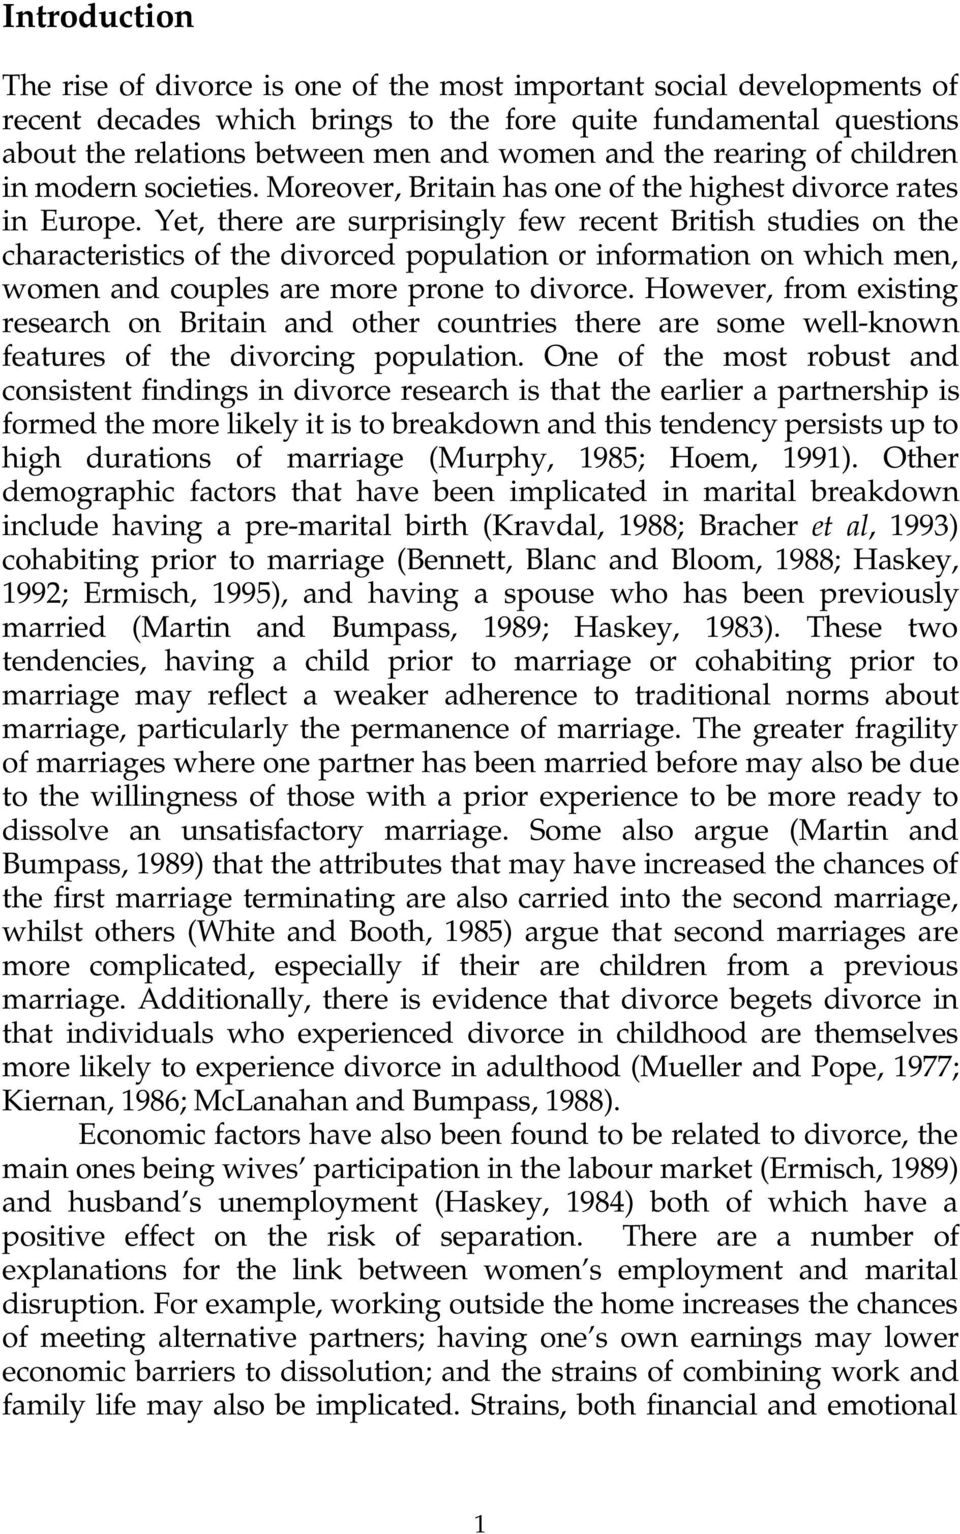 Yet, there are surprisingly few recent British studies on the characteristics of the divorced population or information on which men, women and couples are more prone to divorce.